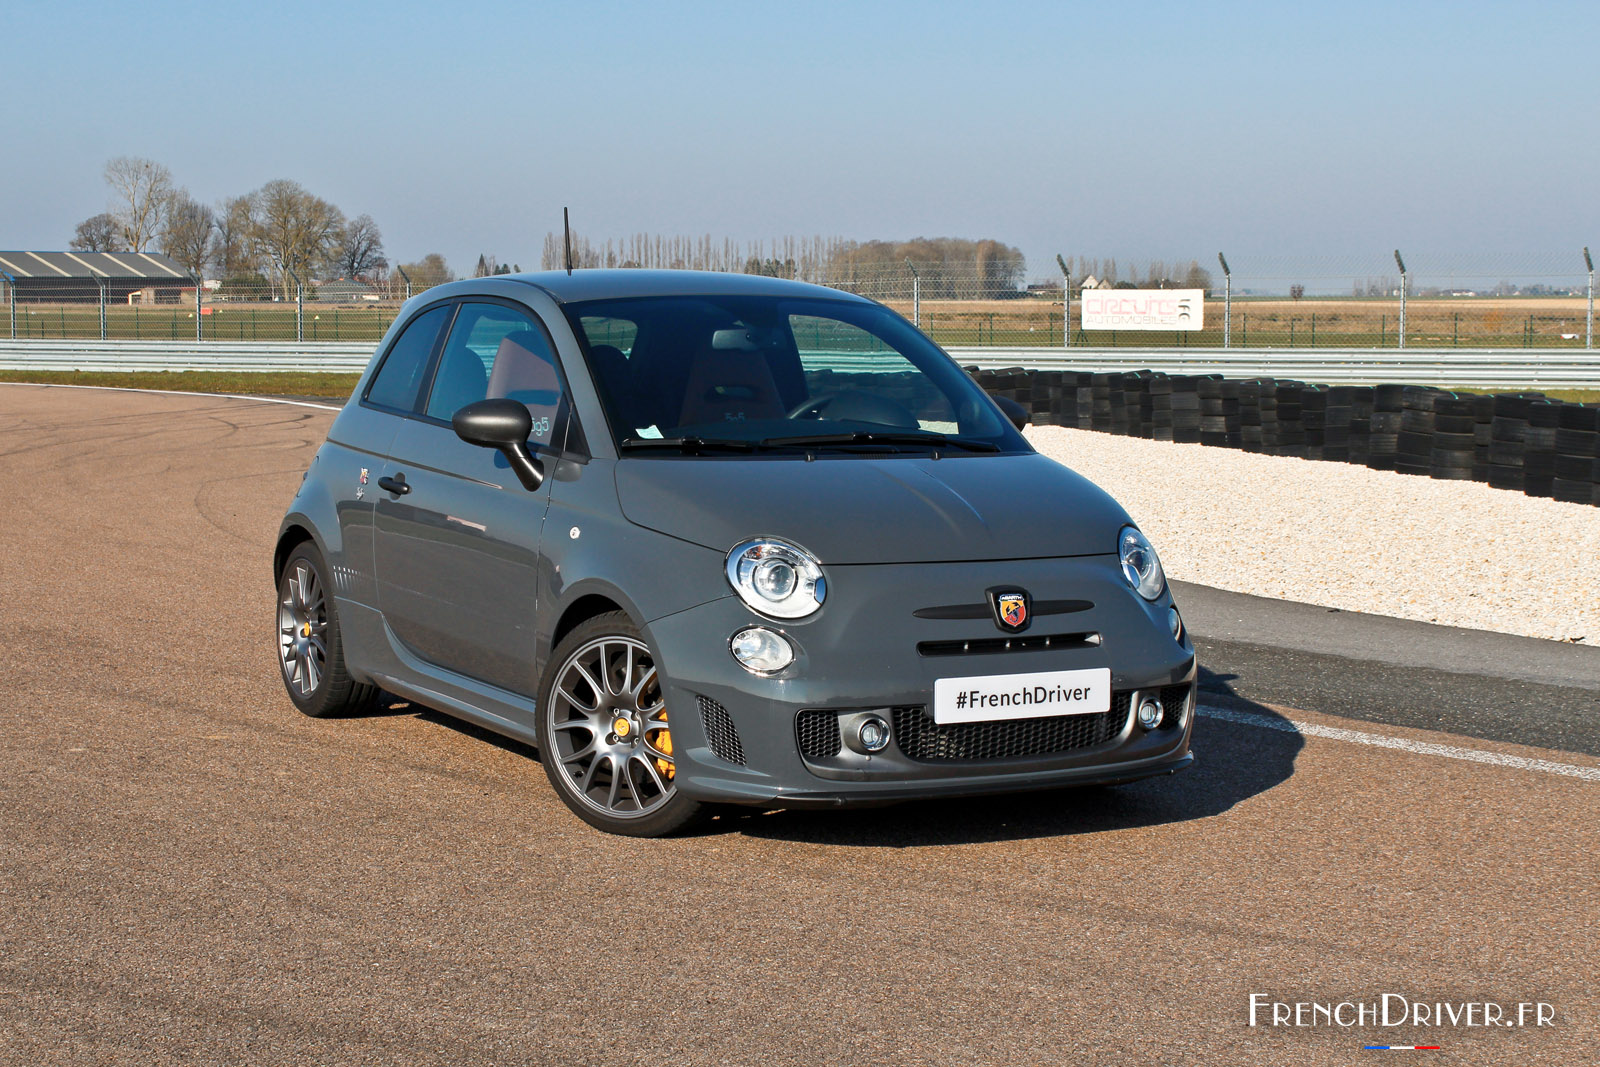 essai de l 39 abarth 595 competizione la piste comme terrain de pr dilection french driver. Black Bedroom Furniture Sets. Home Design Ideas